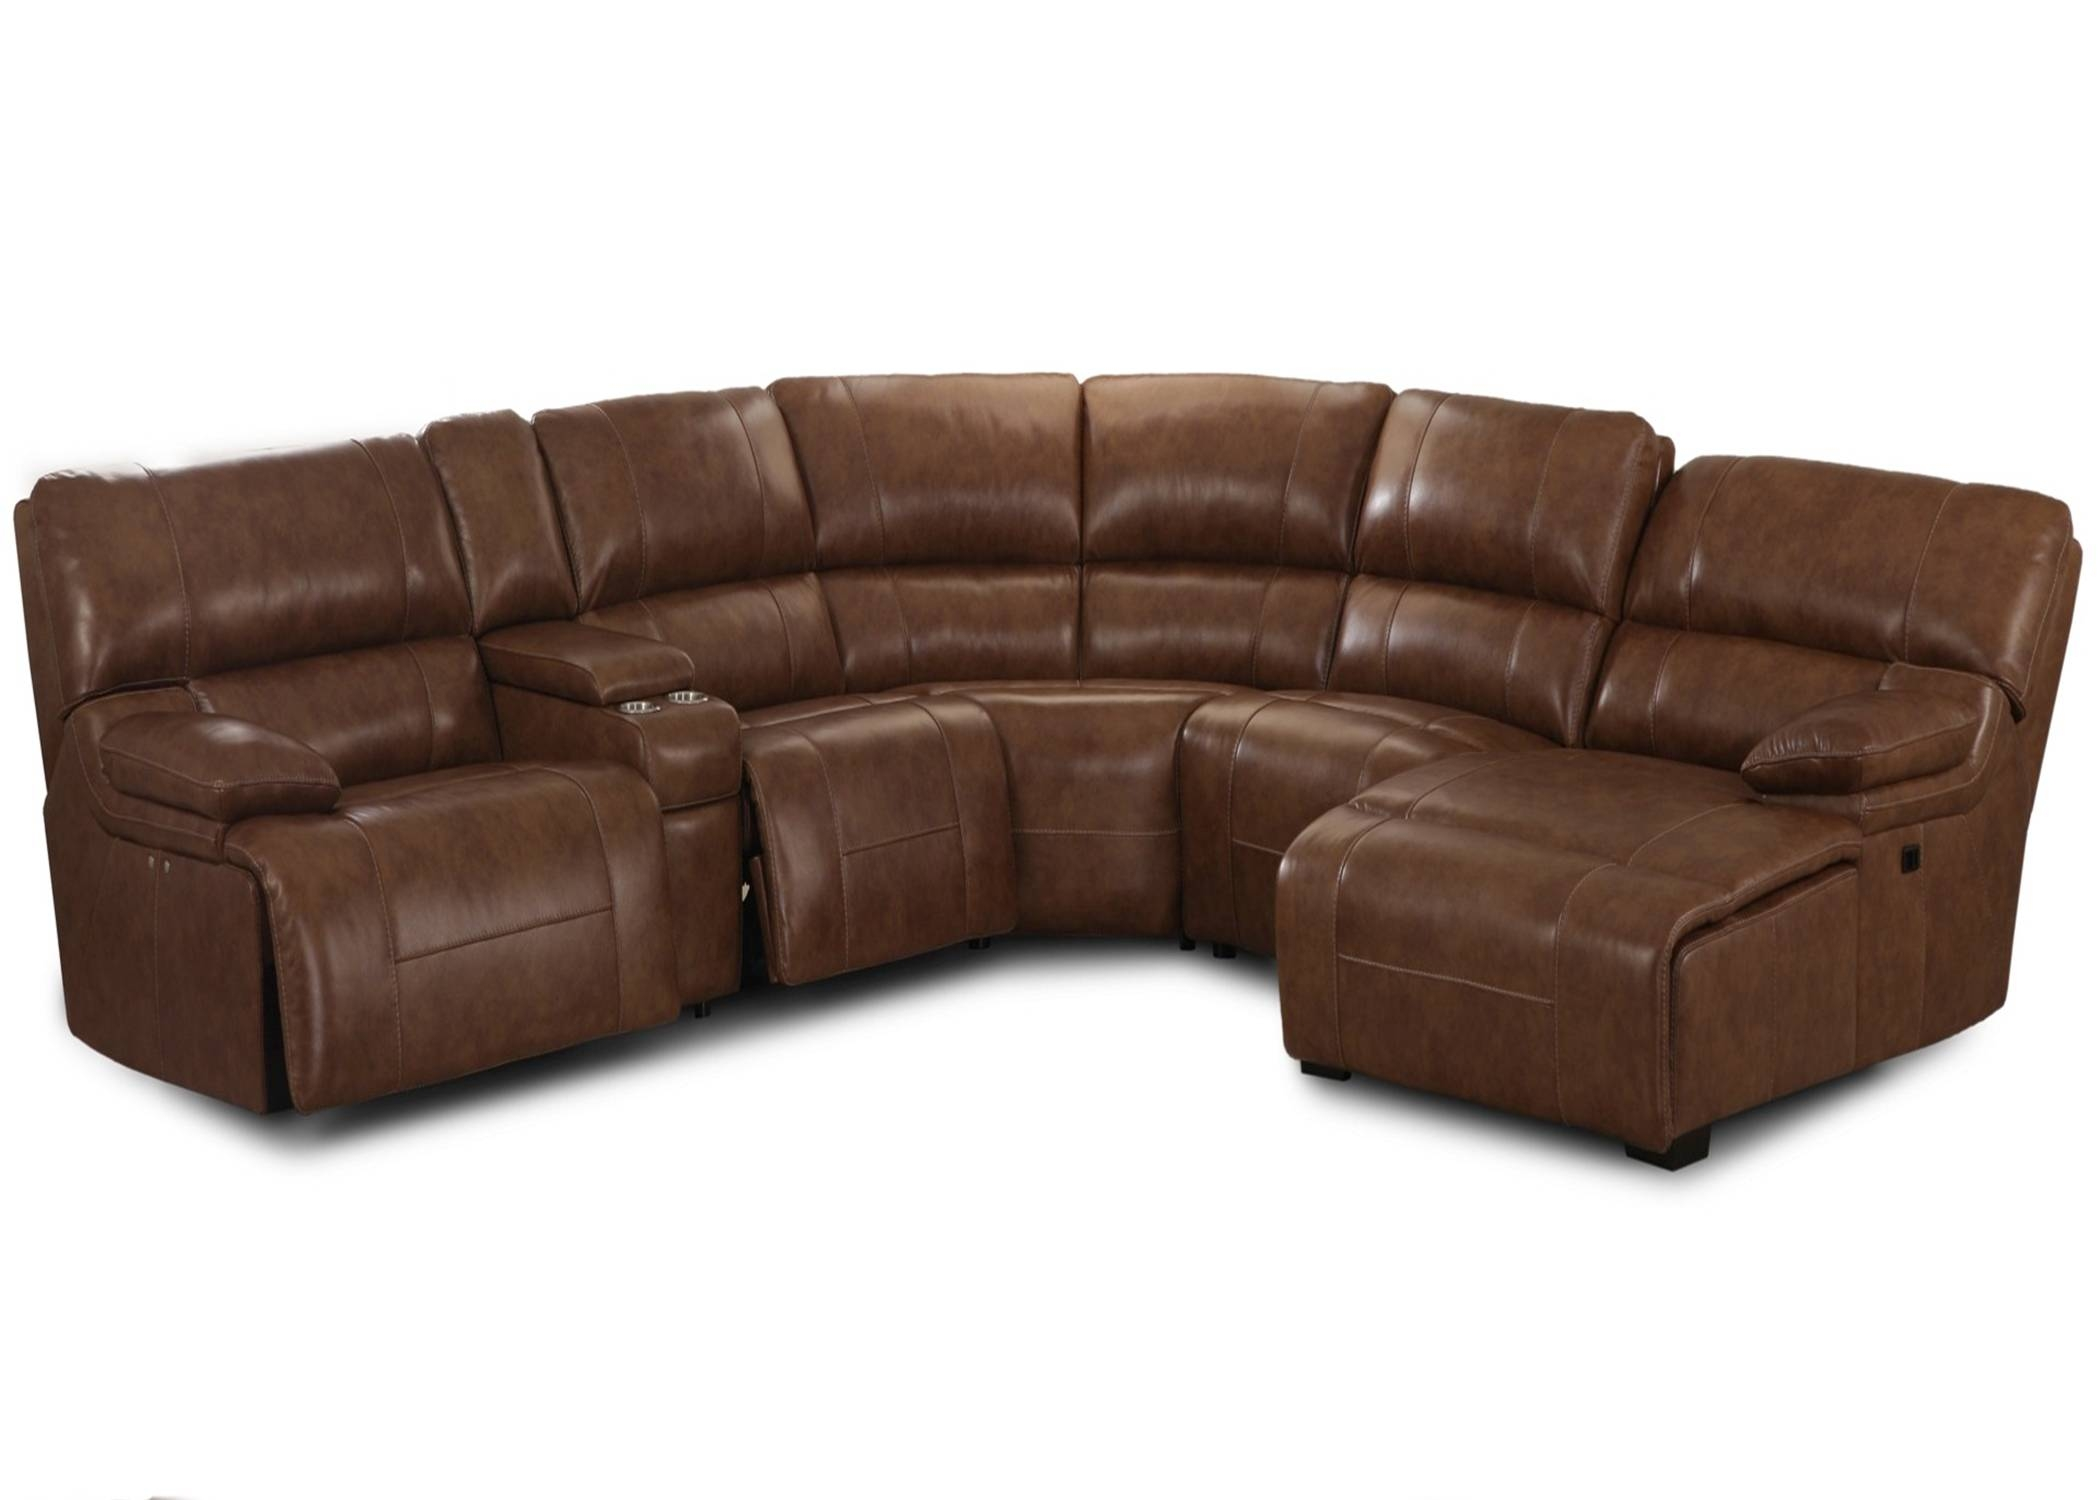 Furniture: Brown Sectional Recliner Sofasimon Li Leather Sofa throughout Cool Sofa Ideas (Image 11 of 30)